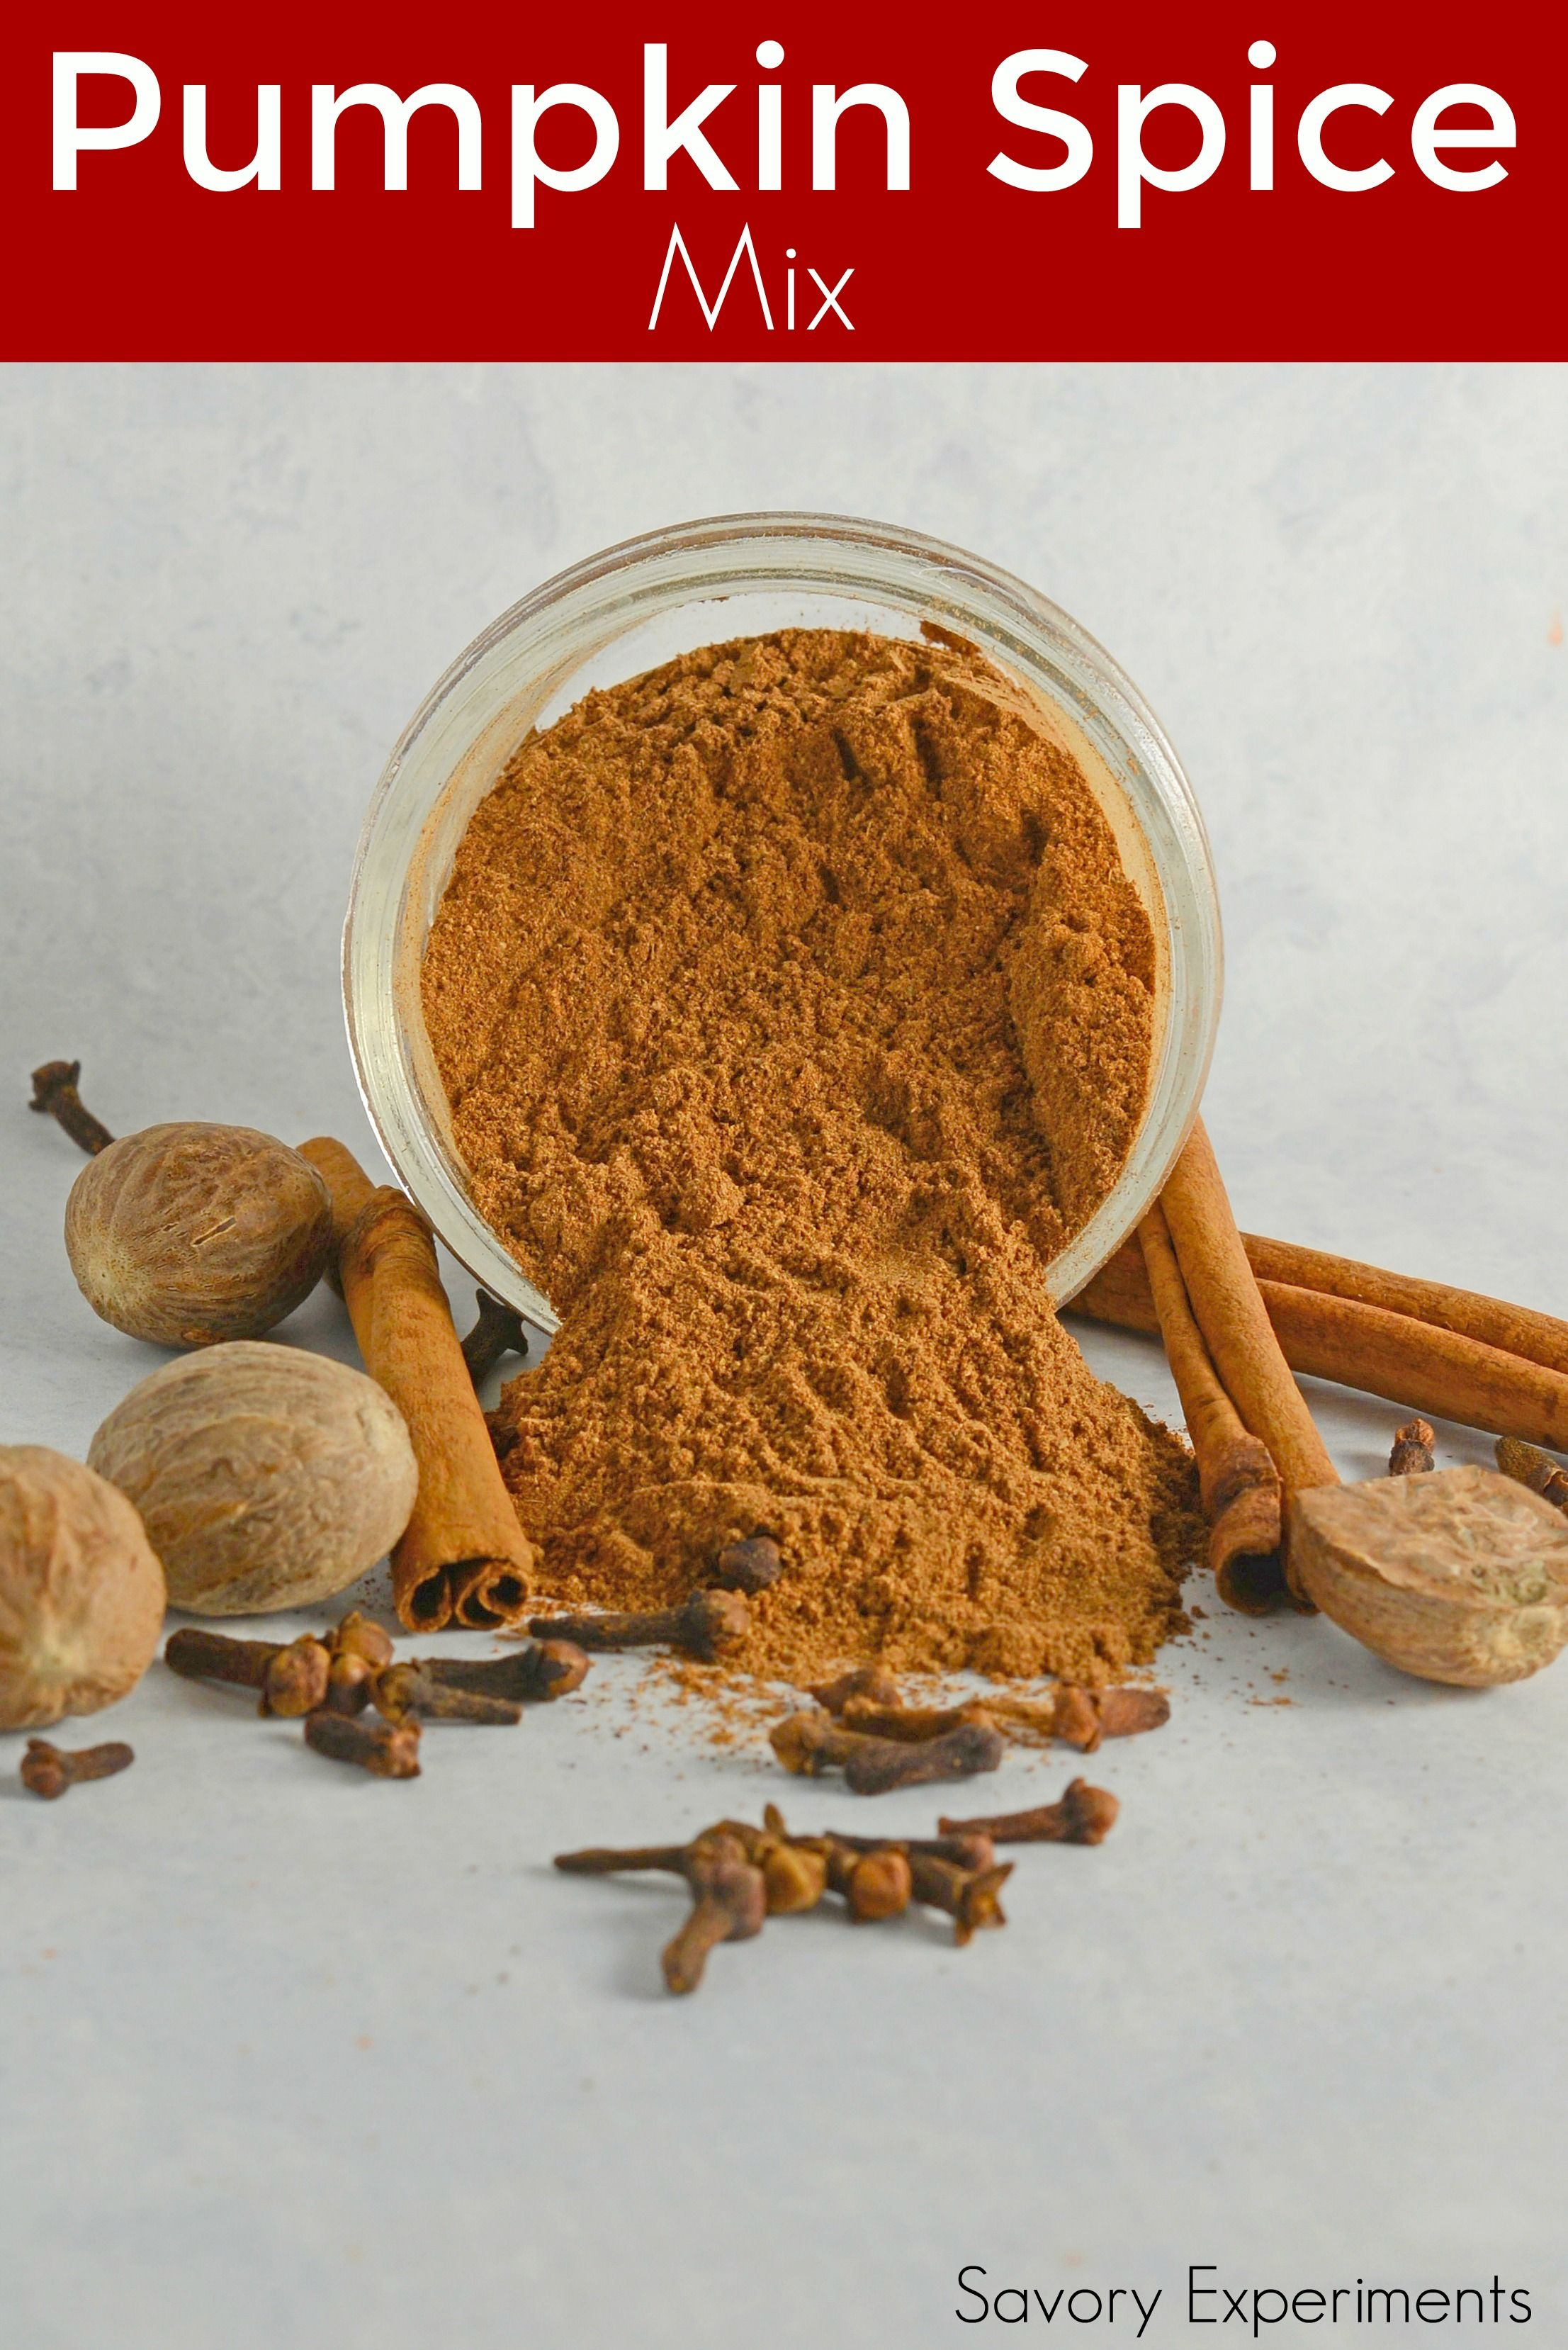 Pumpkin pie spice is a simple recipe made from ingredients